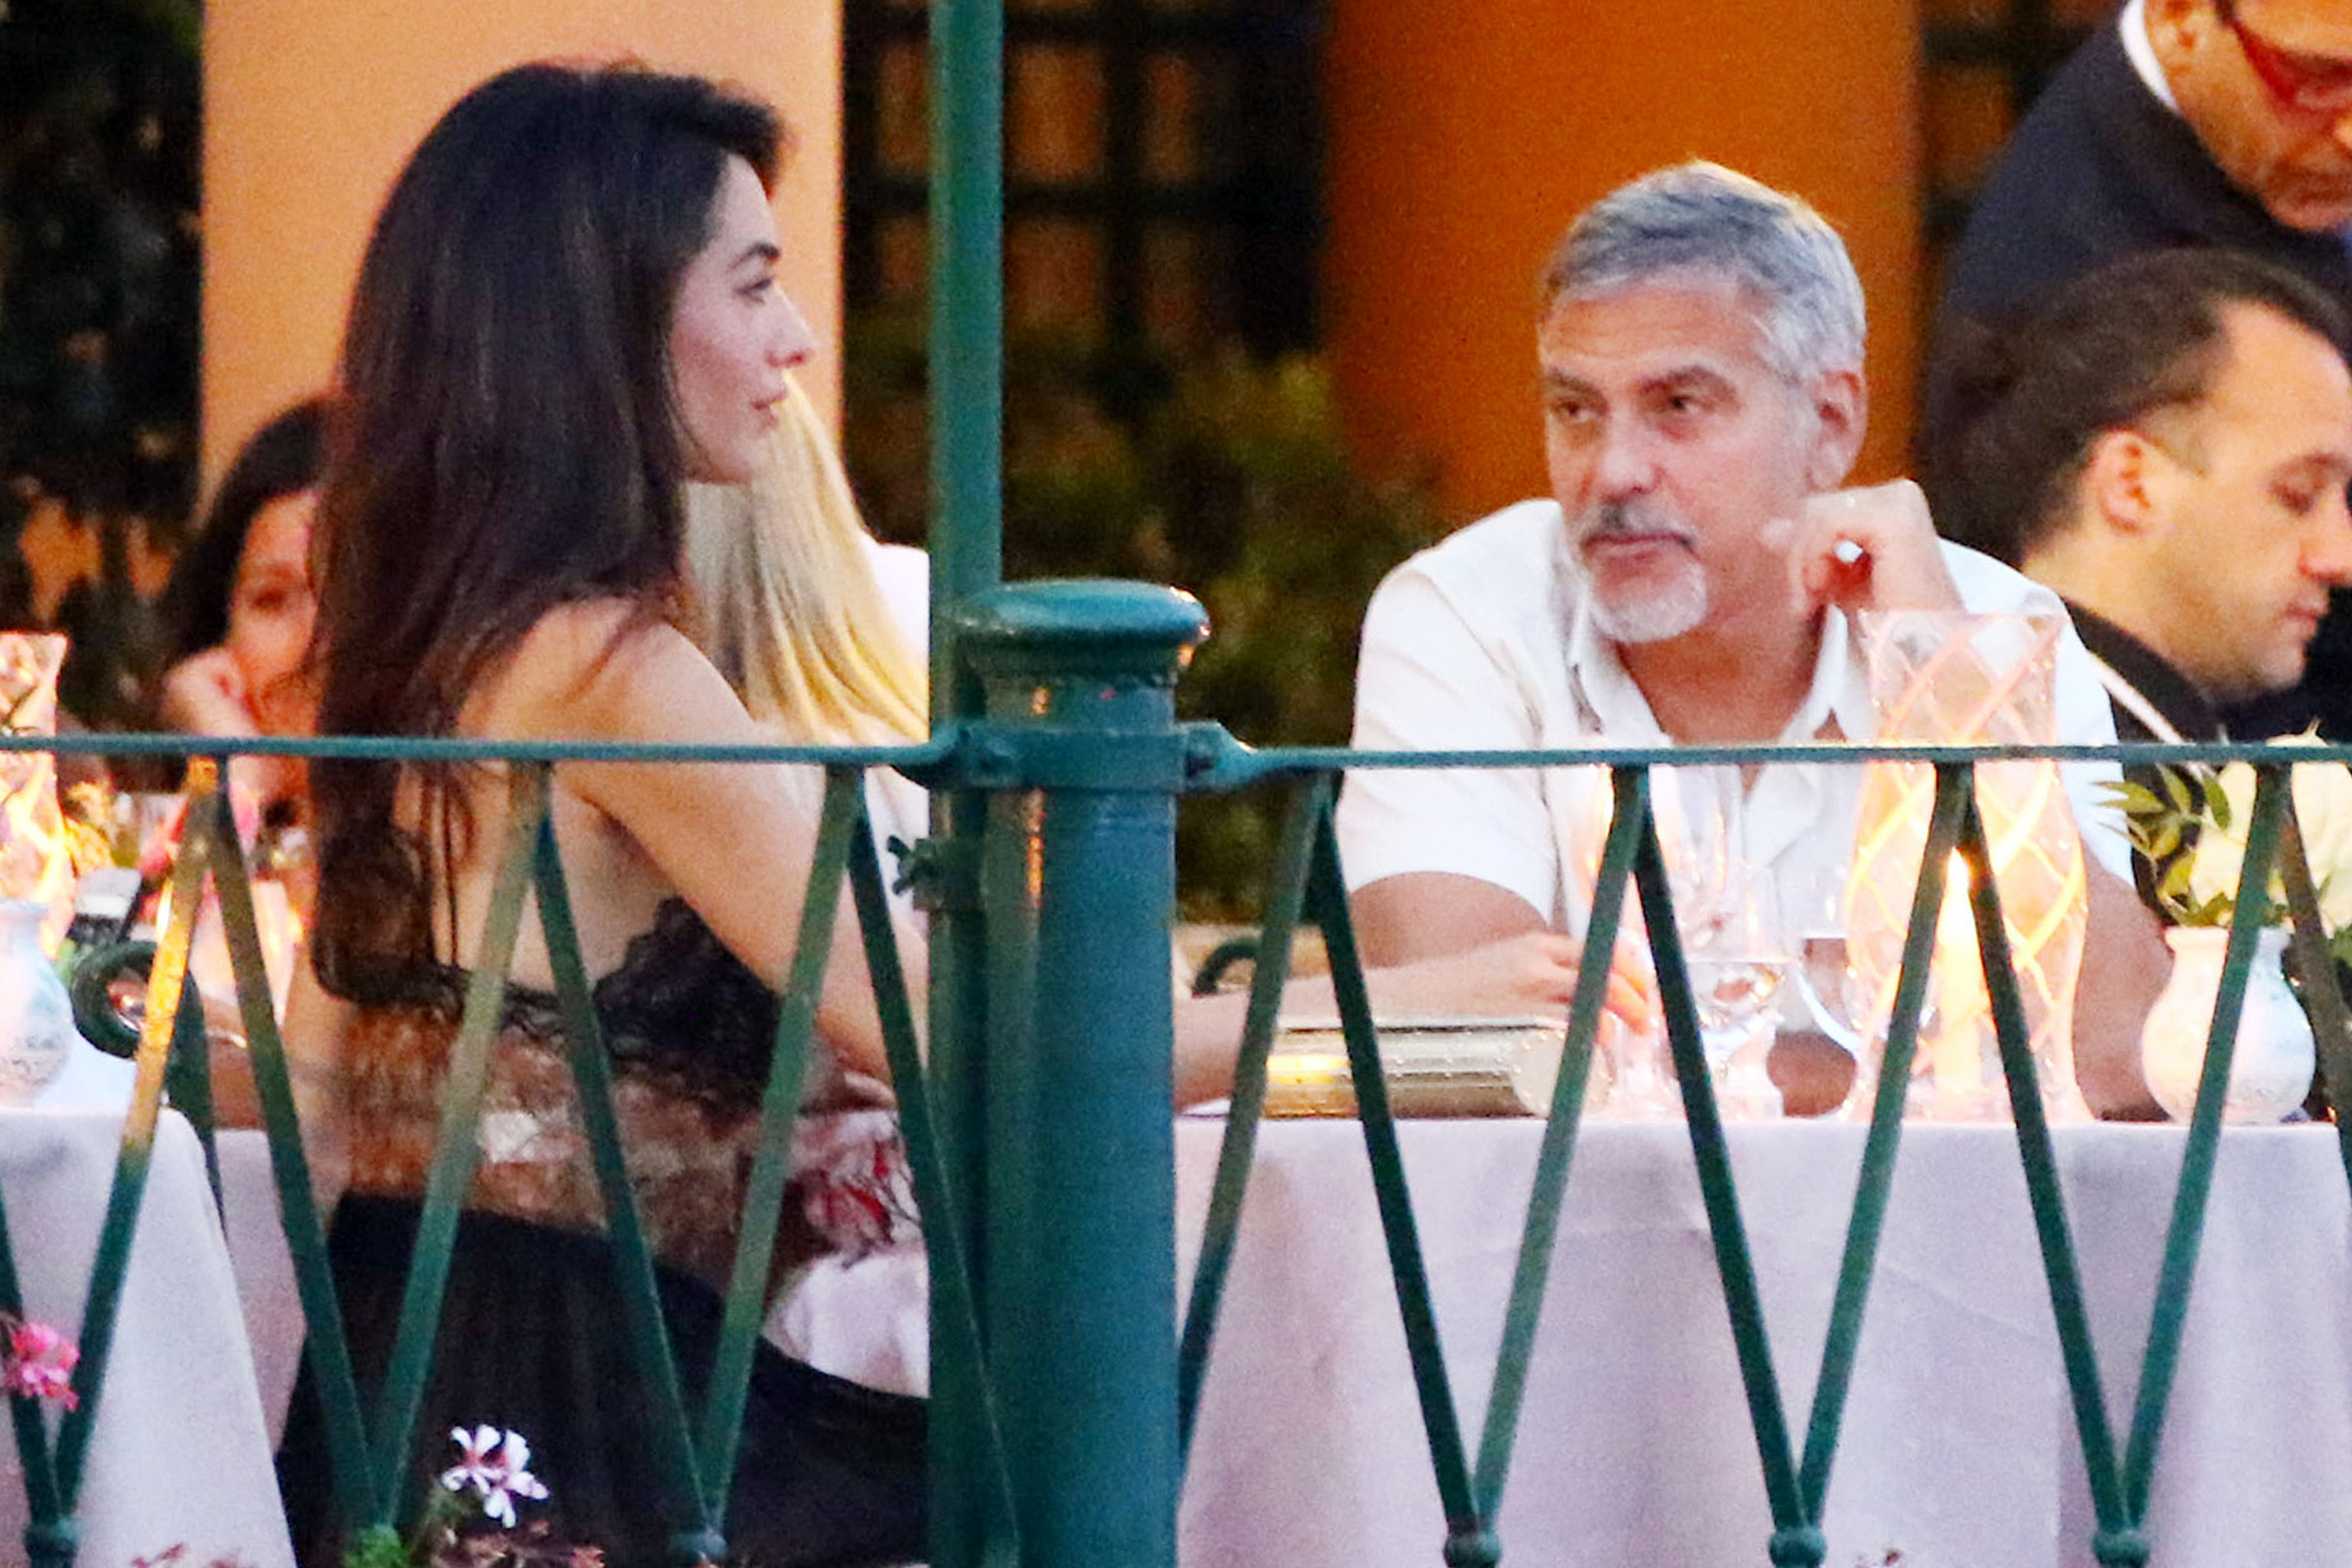 George and Amal Clooney step out for a date night in Portofino